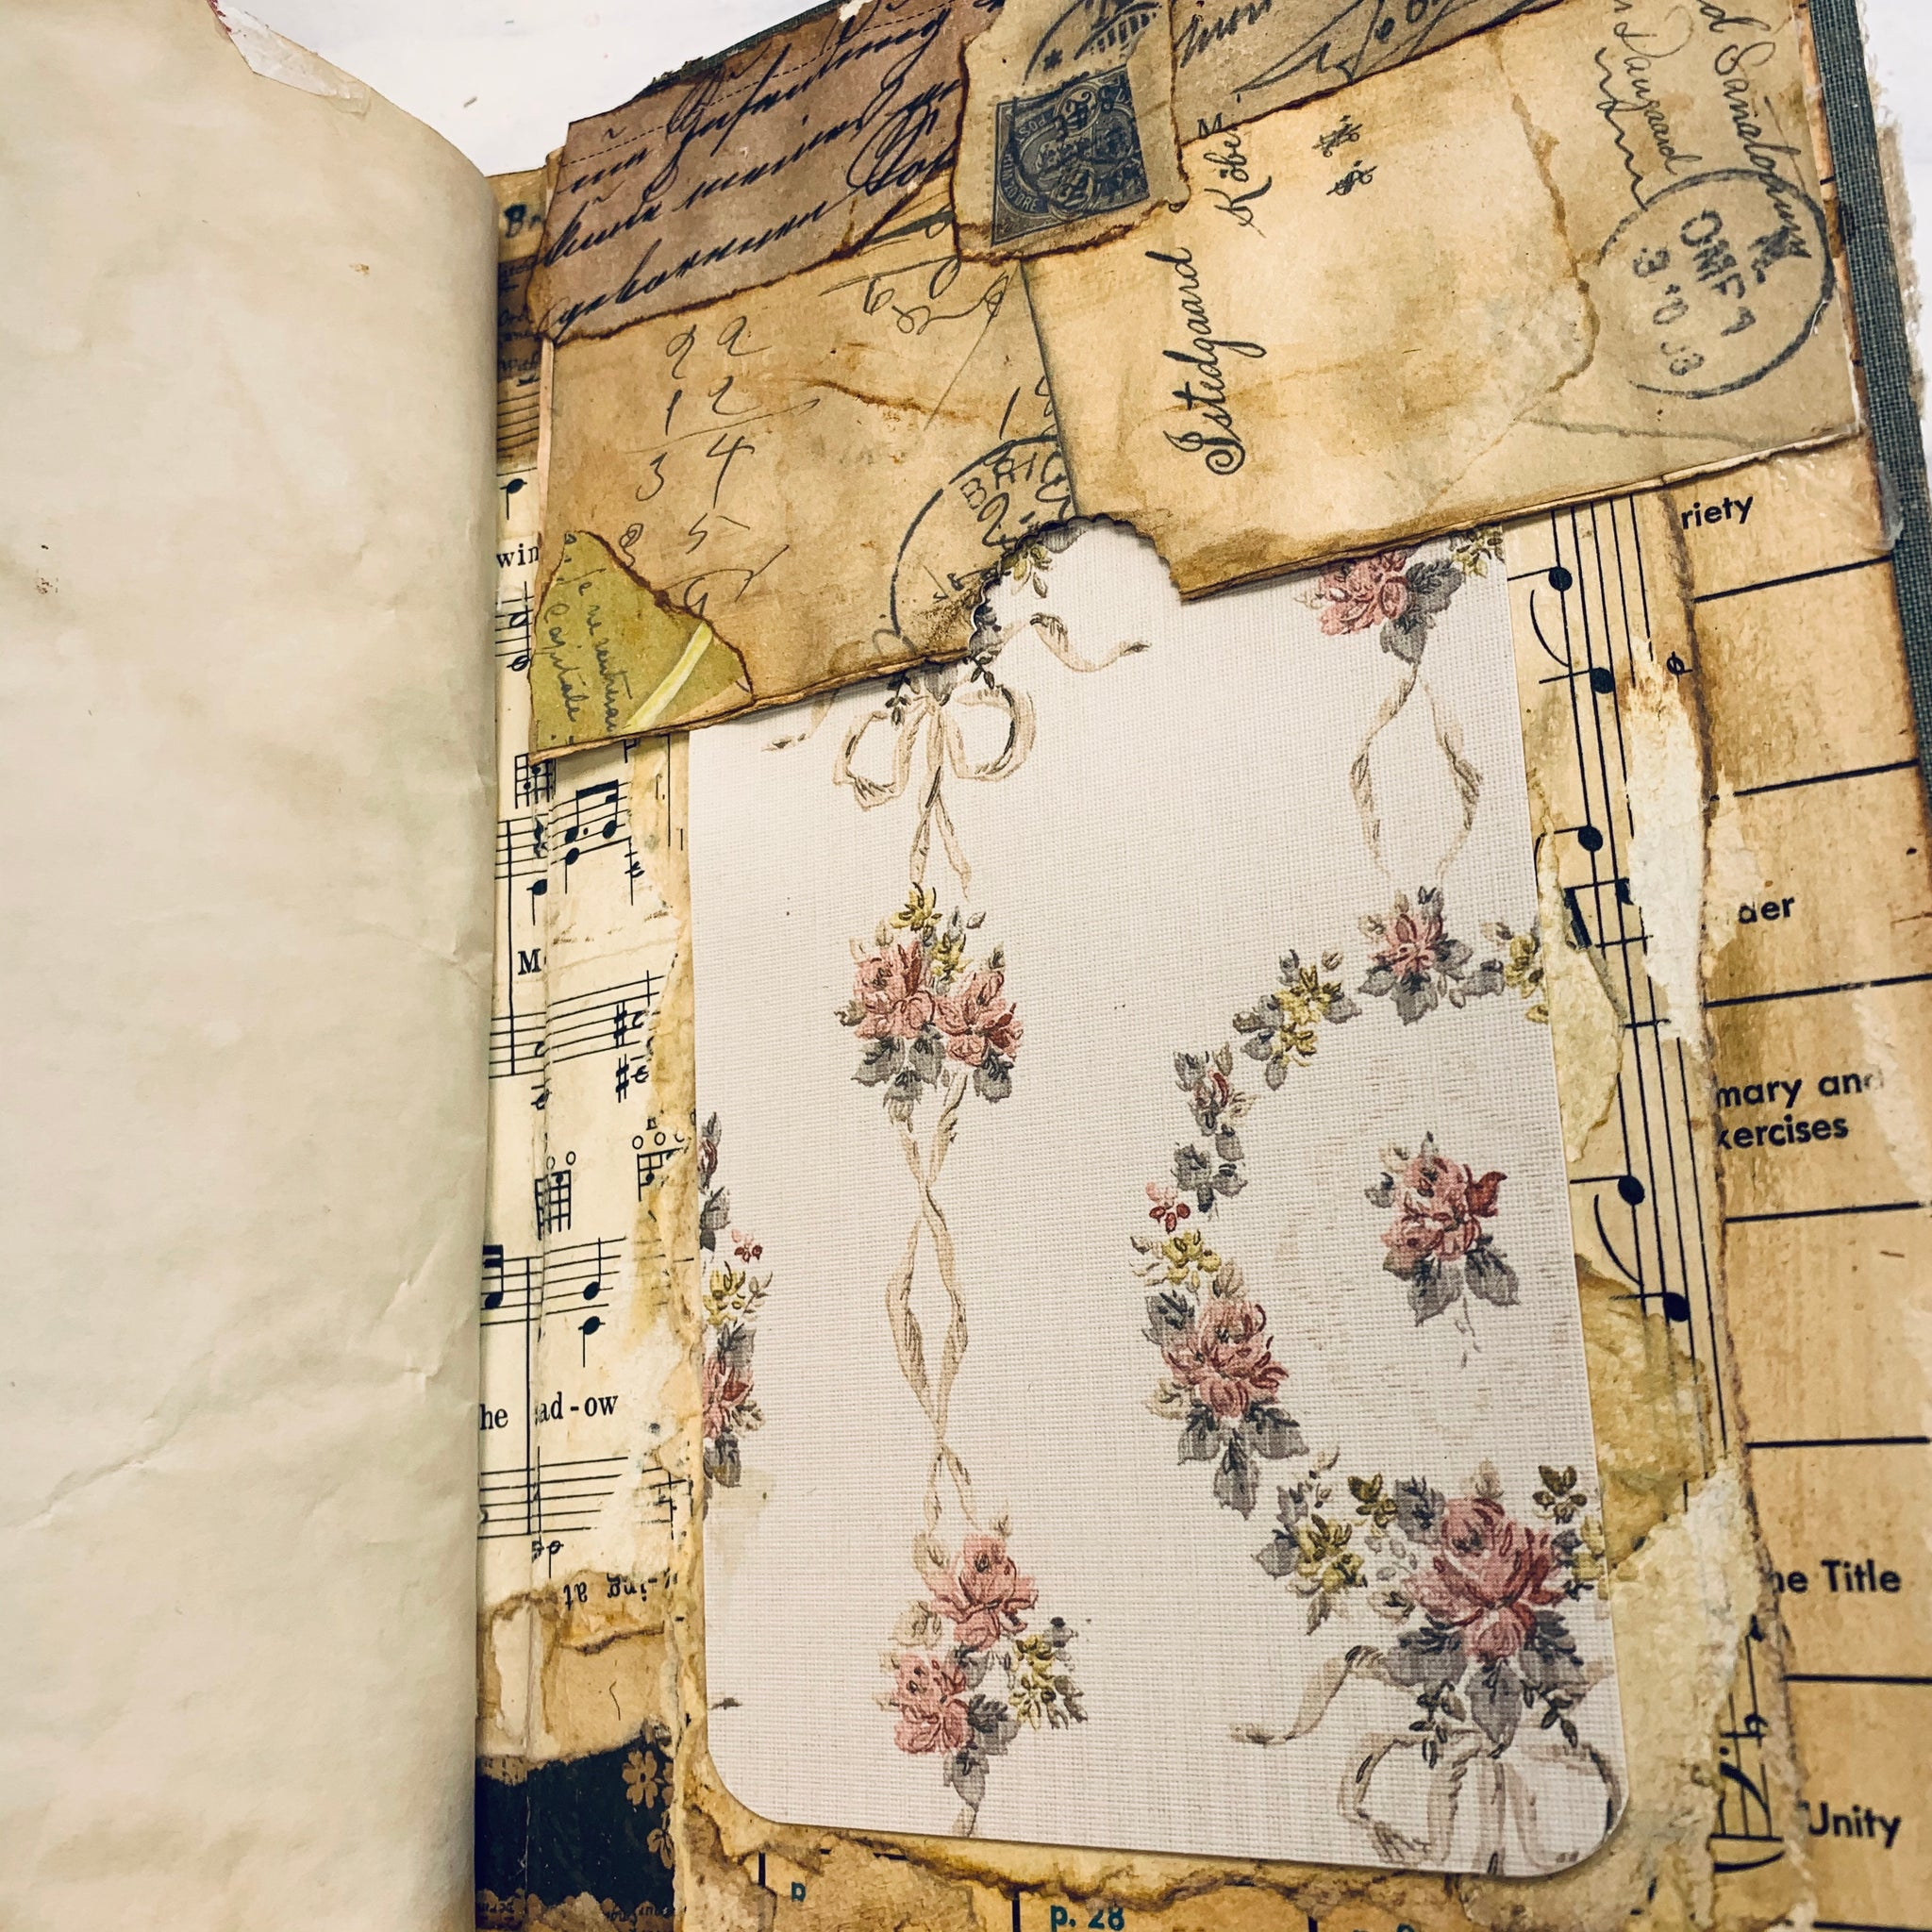 Red Bow Junk Journal by Beatriz Barraza